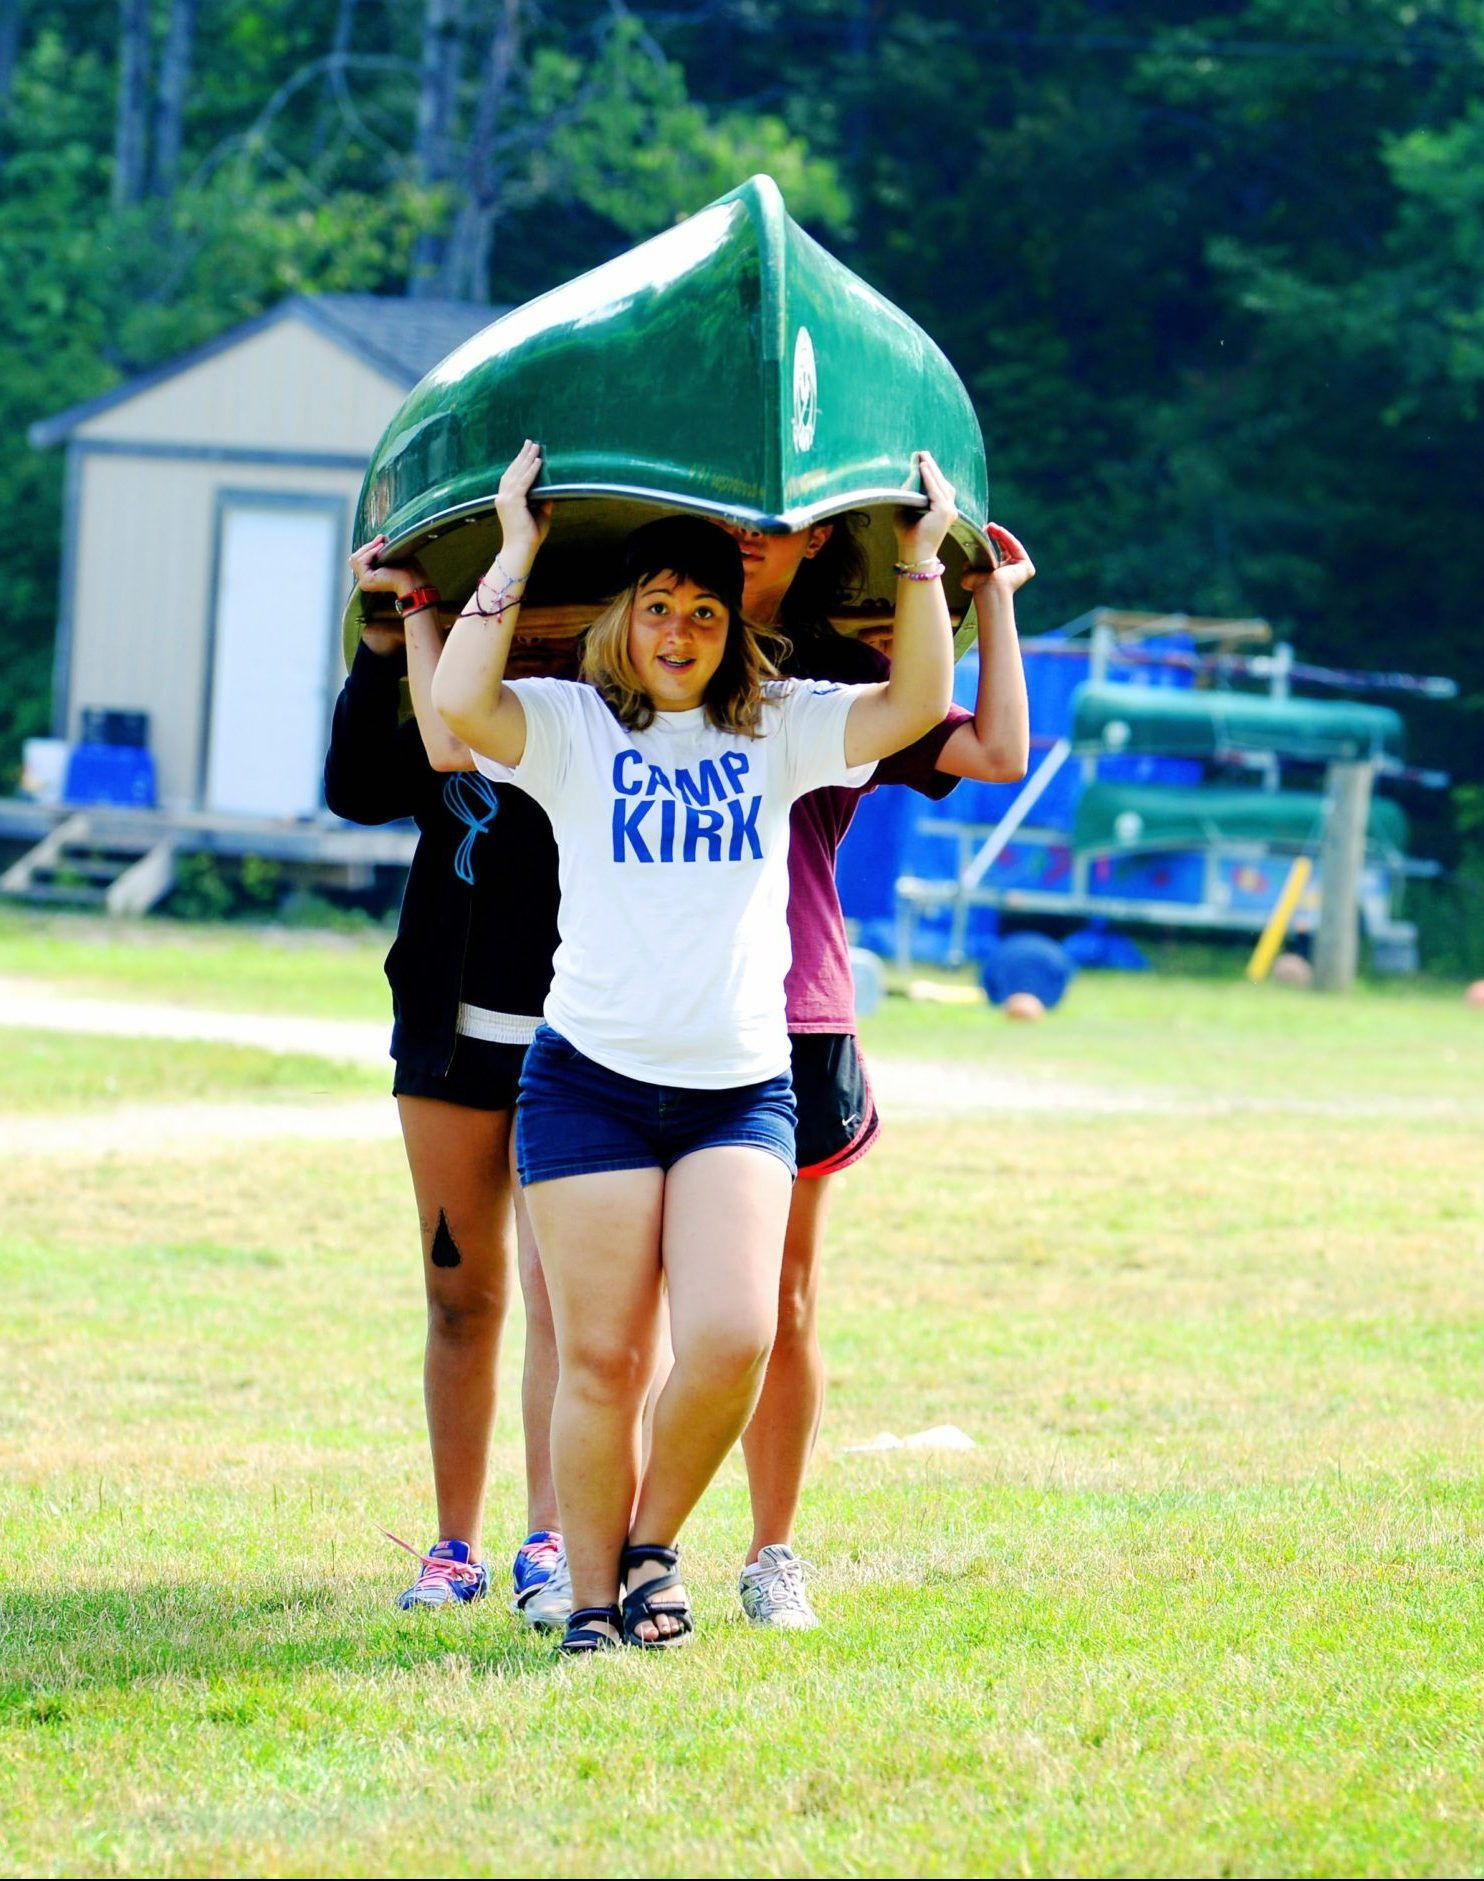 Campers portaging a canoe